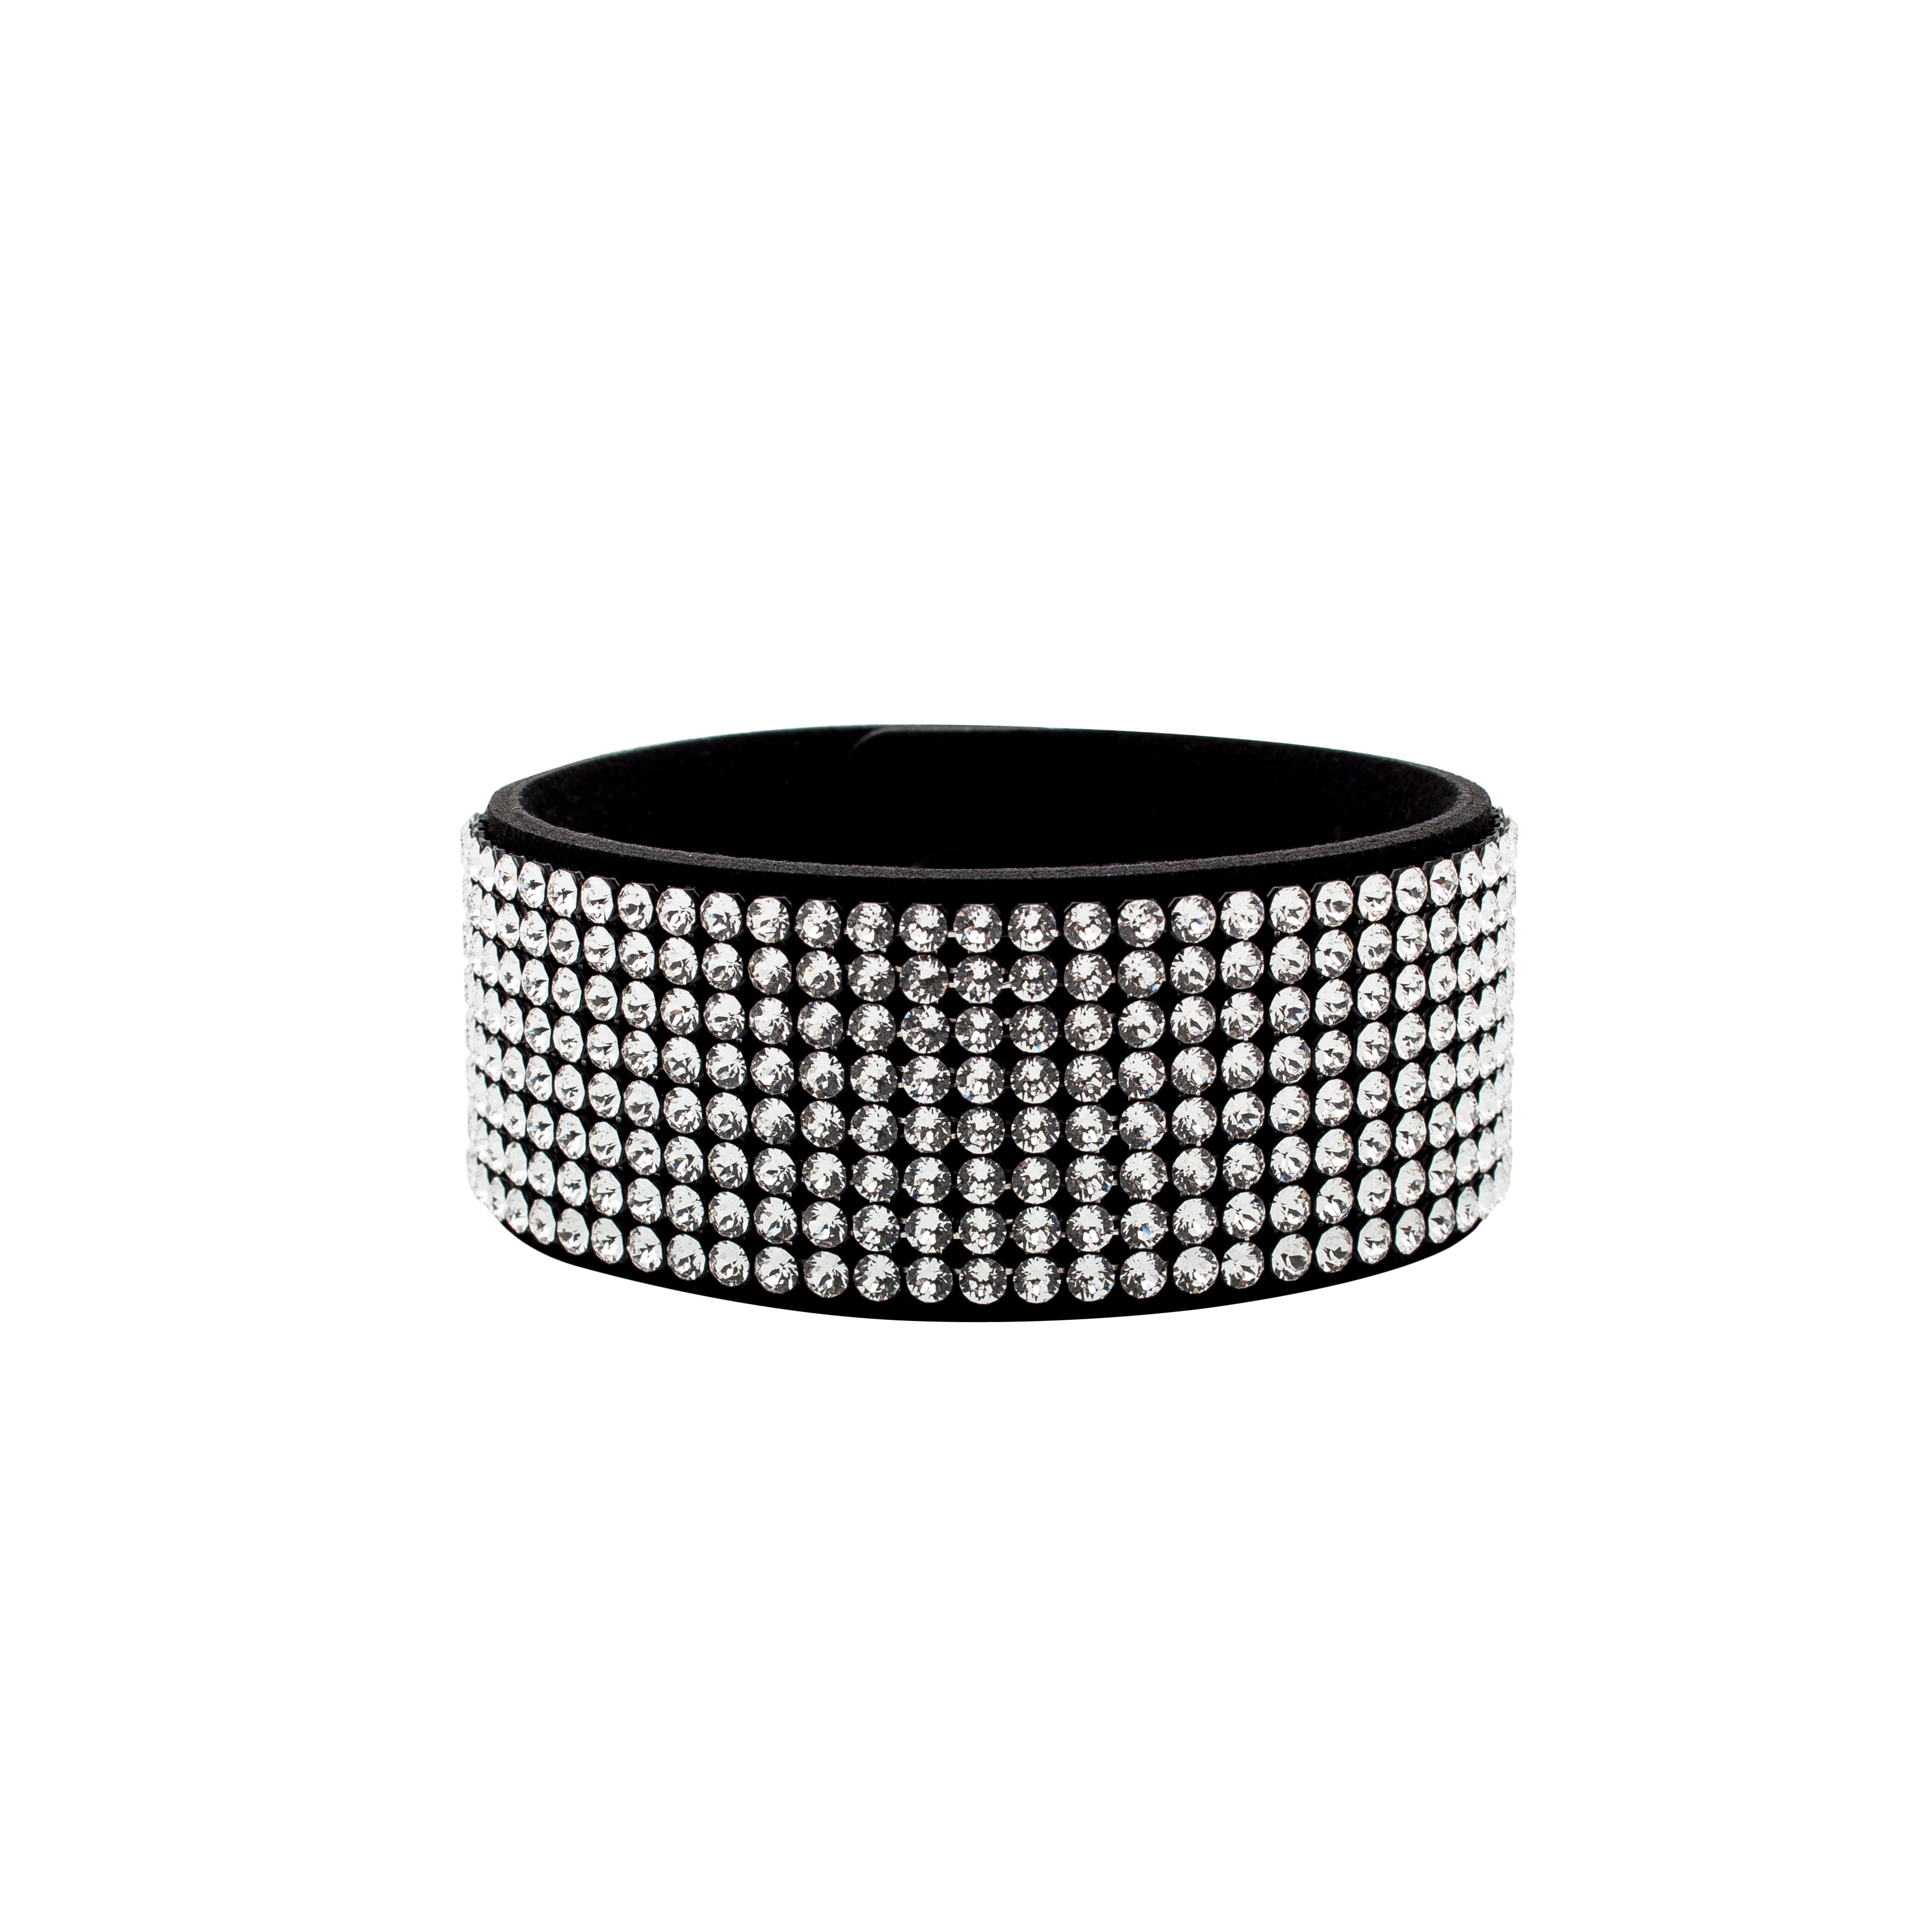 MESH BRACELET 8 ROWS WITH SWAROVSKI CRYSTALS 8R